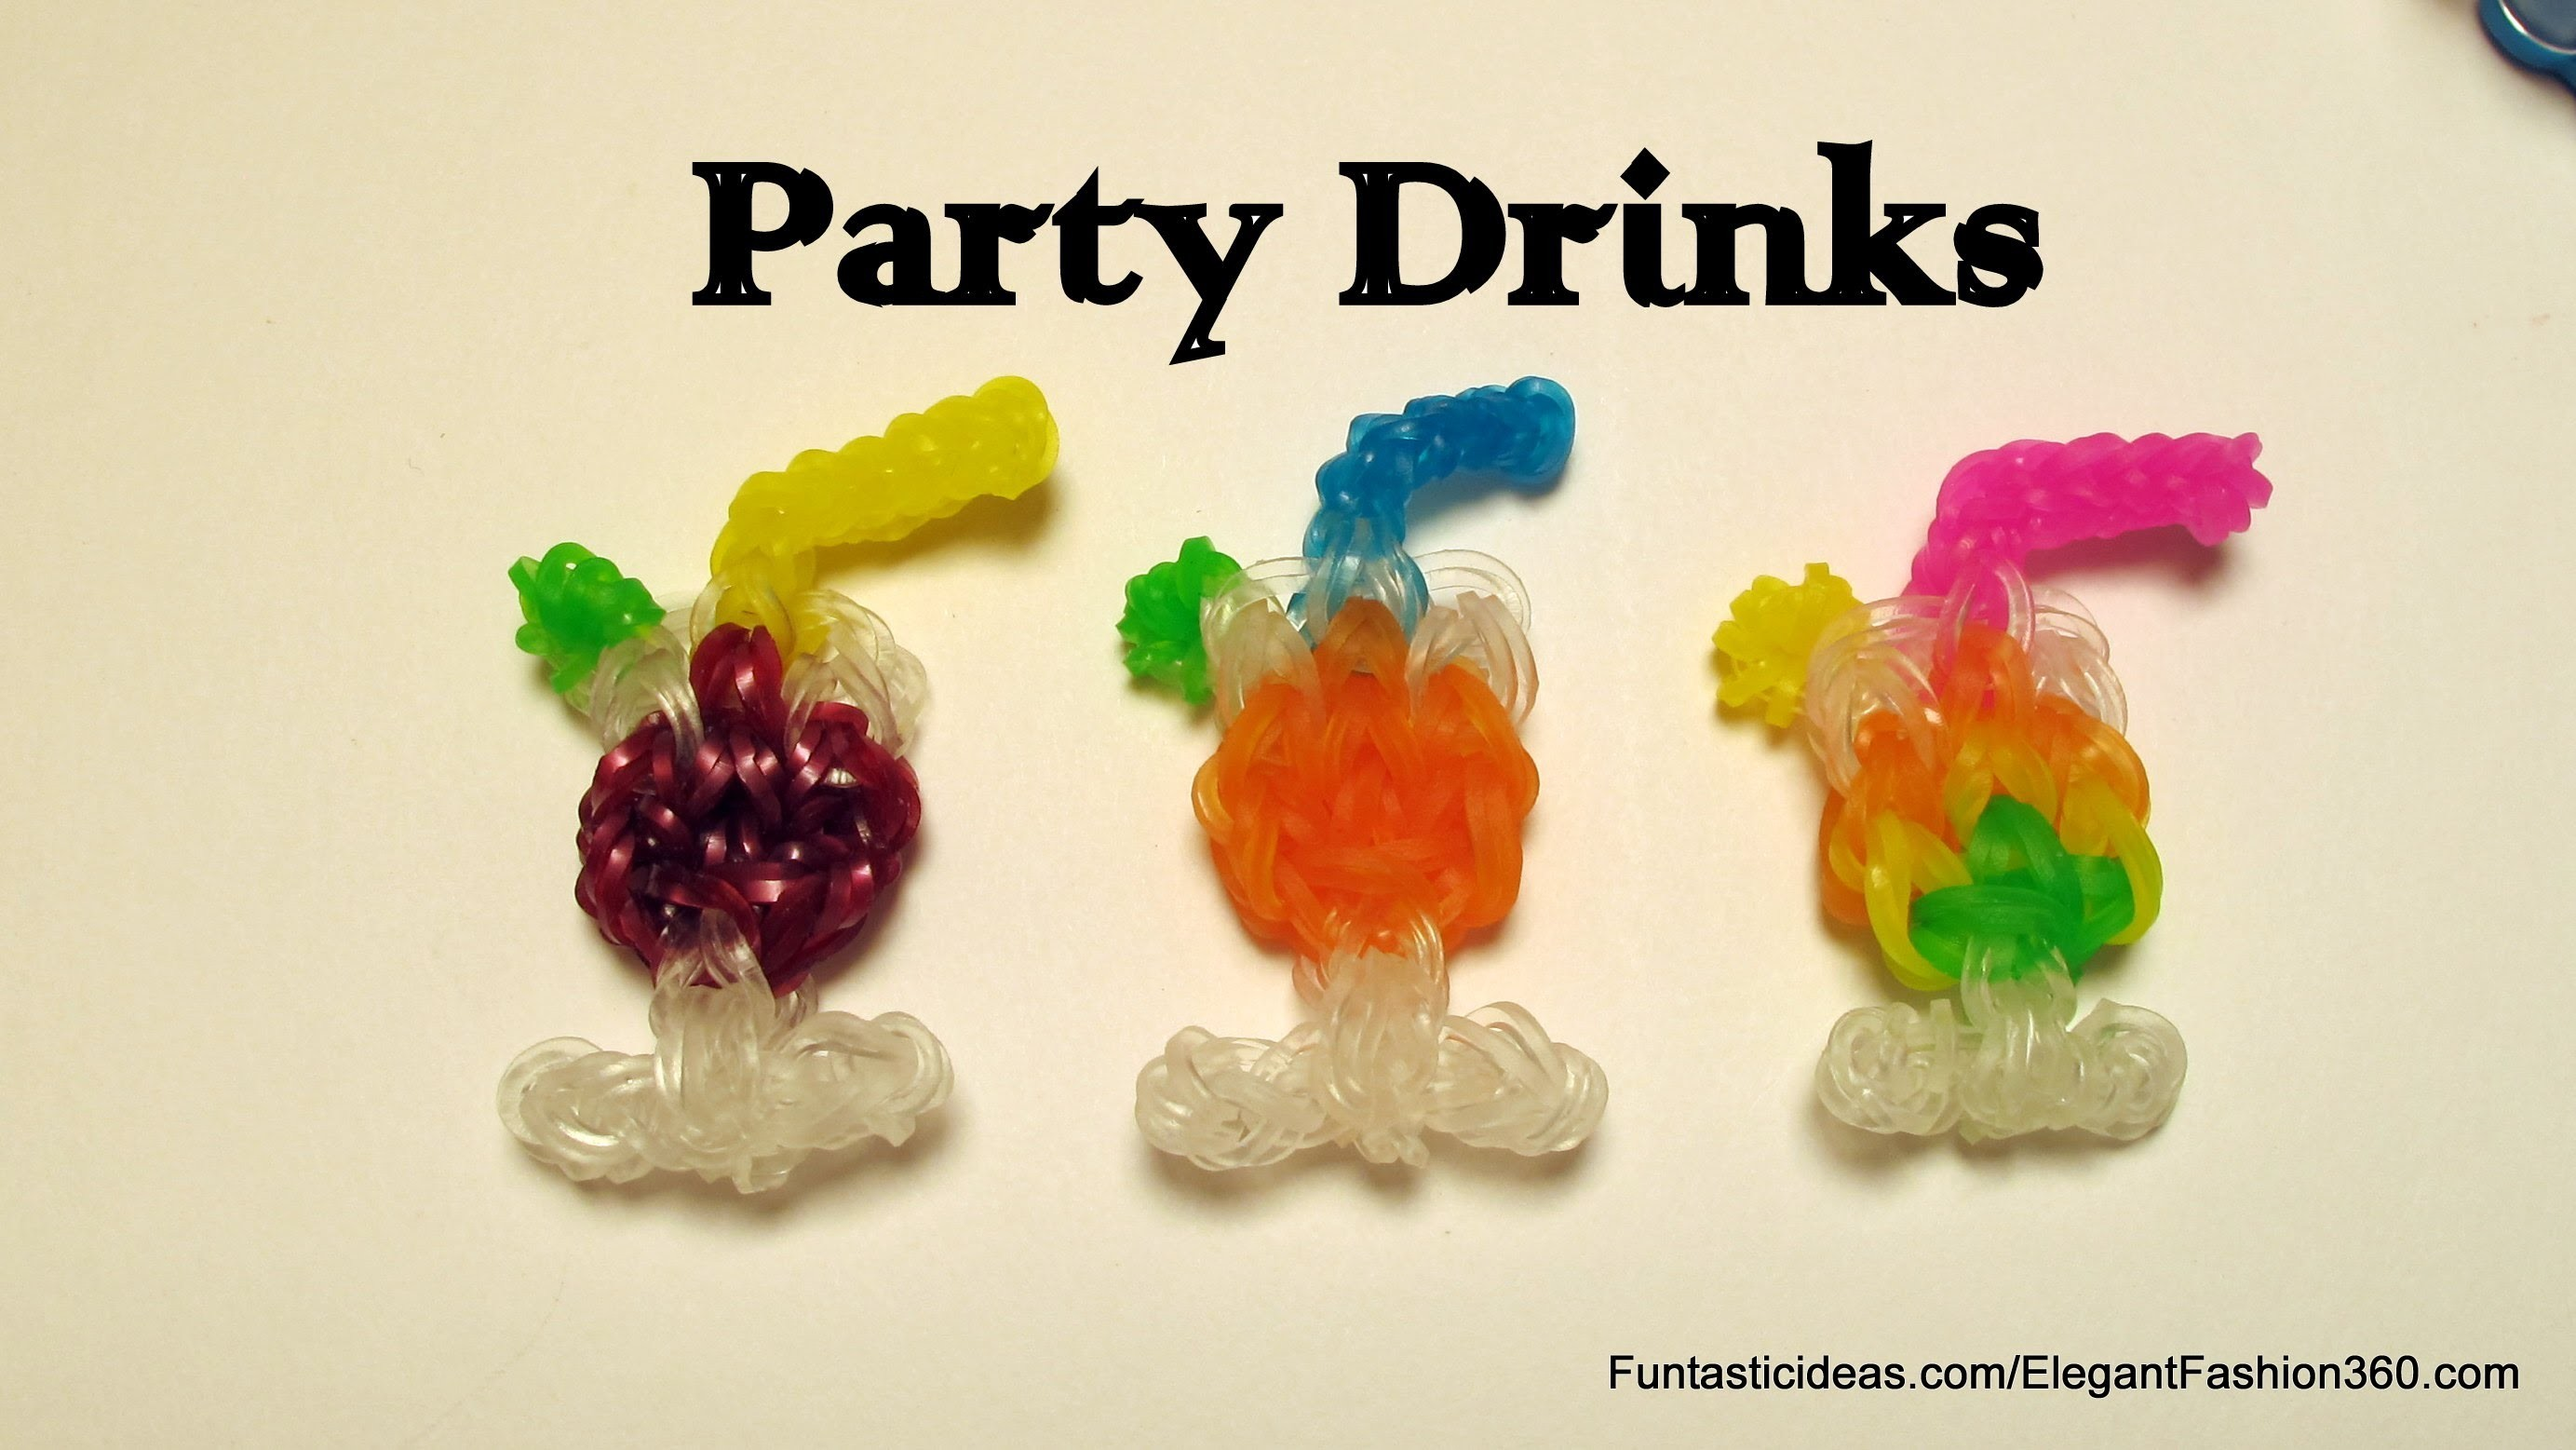 Rainbow Loom Party Glass Drinks.Juice,Cocktail,Wine, Water emoji.emoticon charm - How to